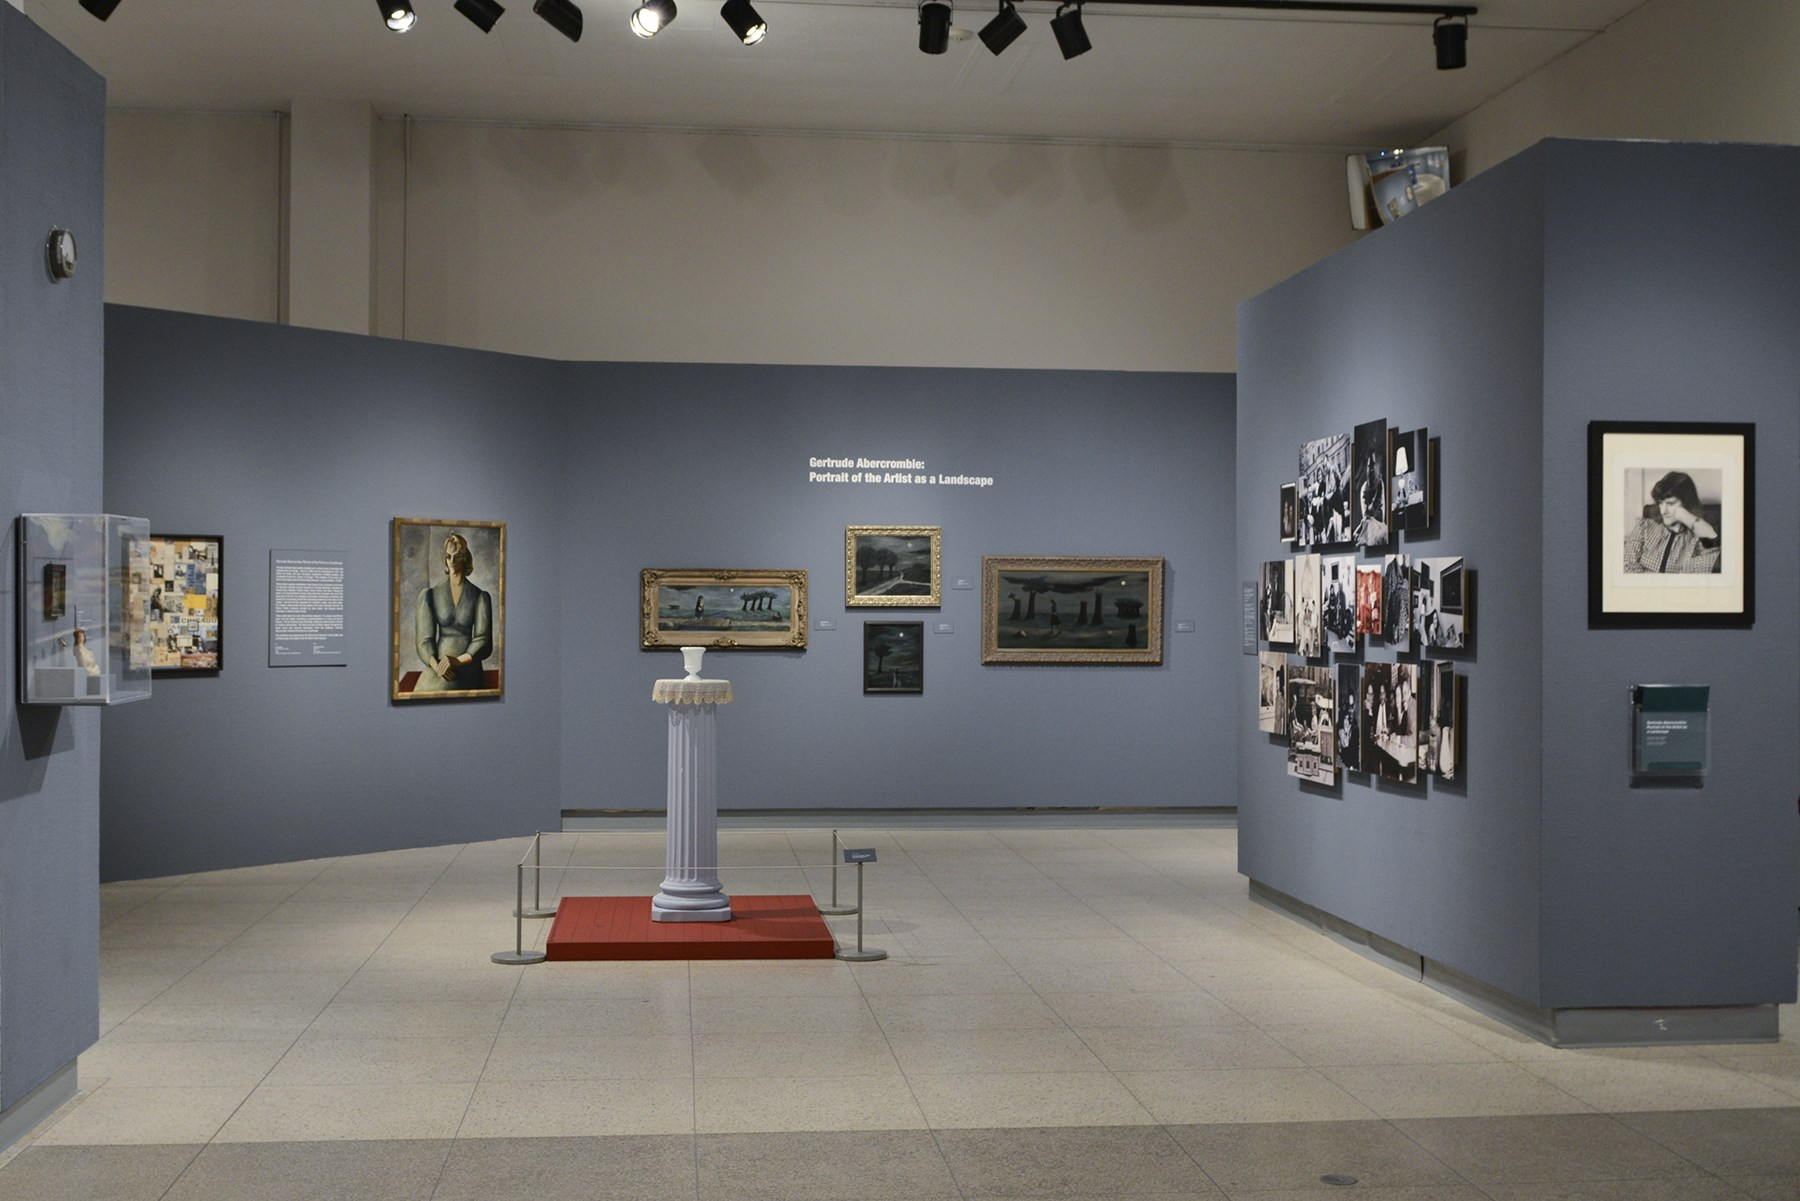 The entrance to the Abercrombie exhibition with dark gray-blue walls, a photo of her hangs to the right, on the back wall are several of her paintings and in the center is the still life display mentioned above. Image courtesy of the Illinois State Museum.